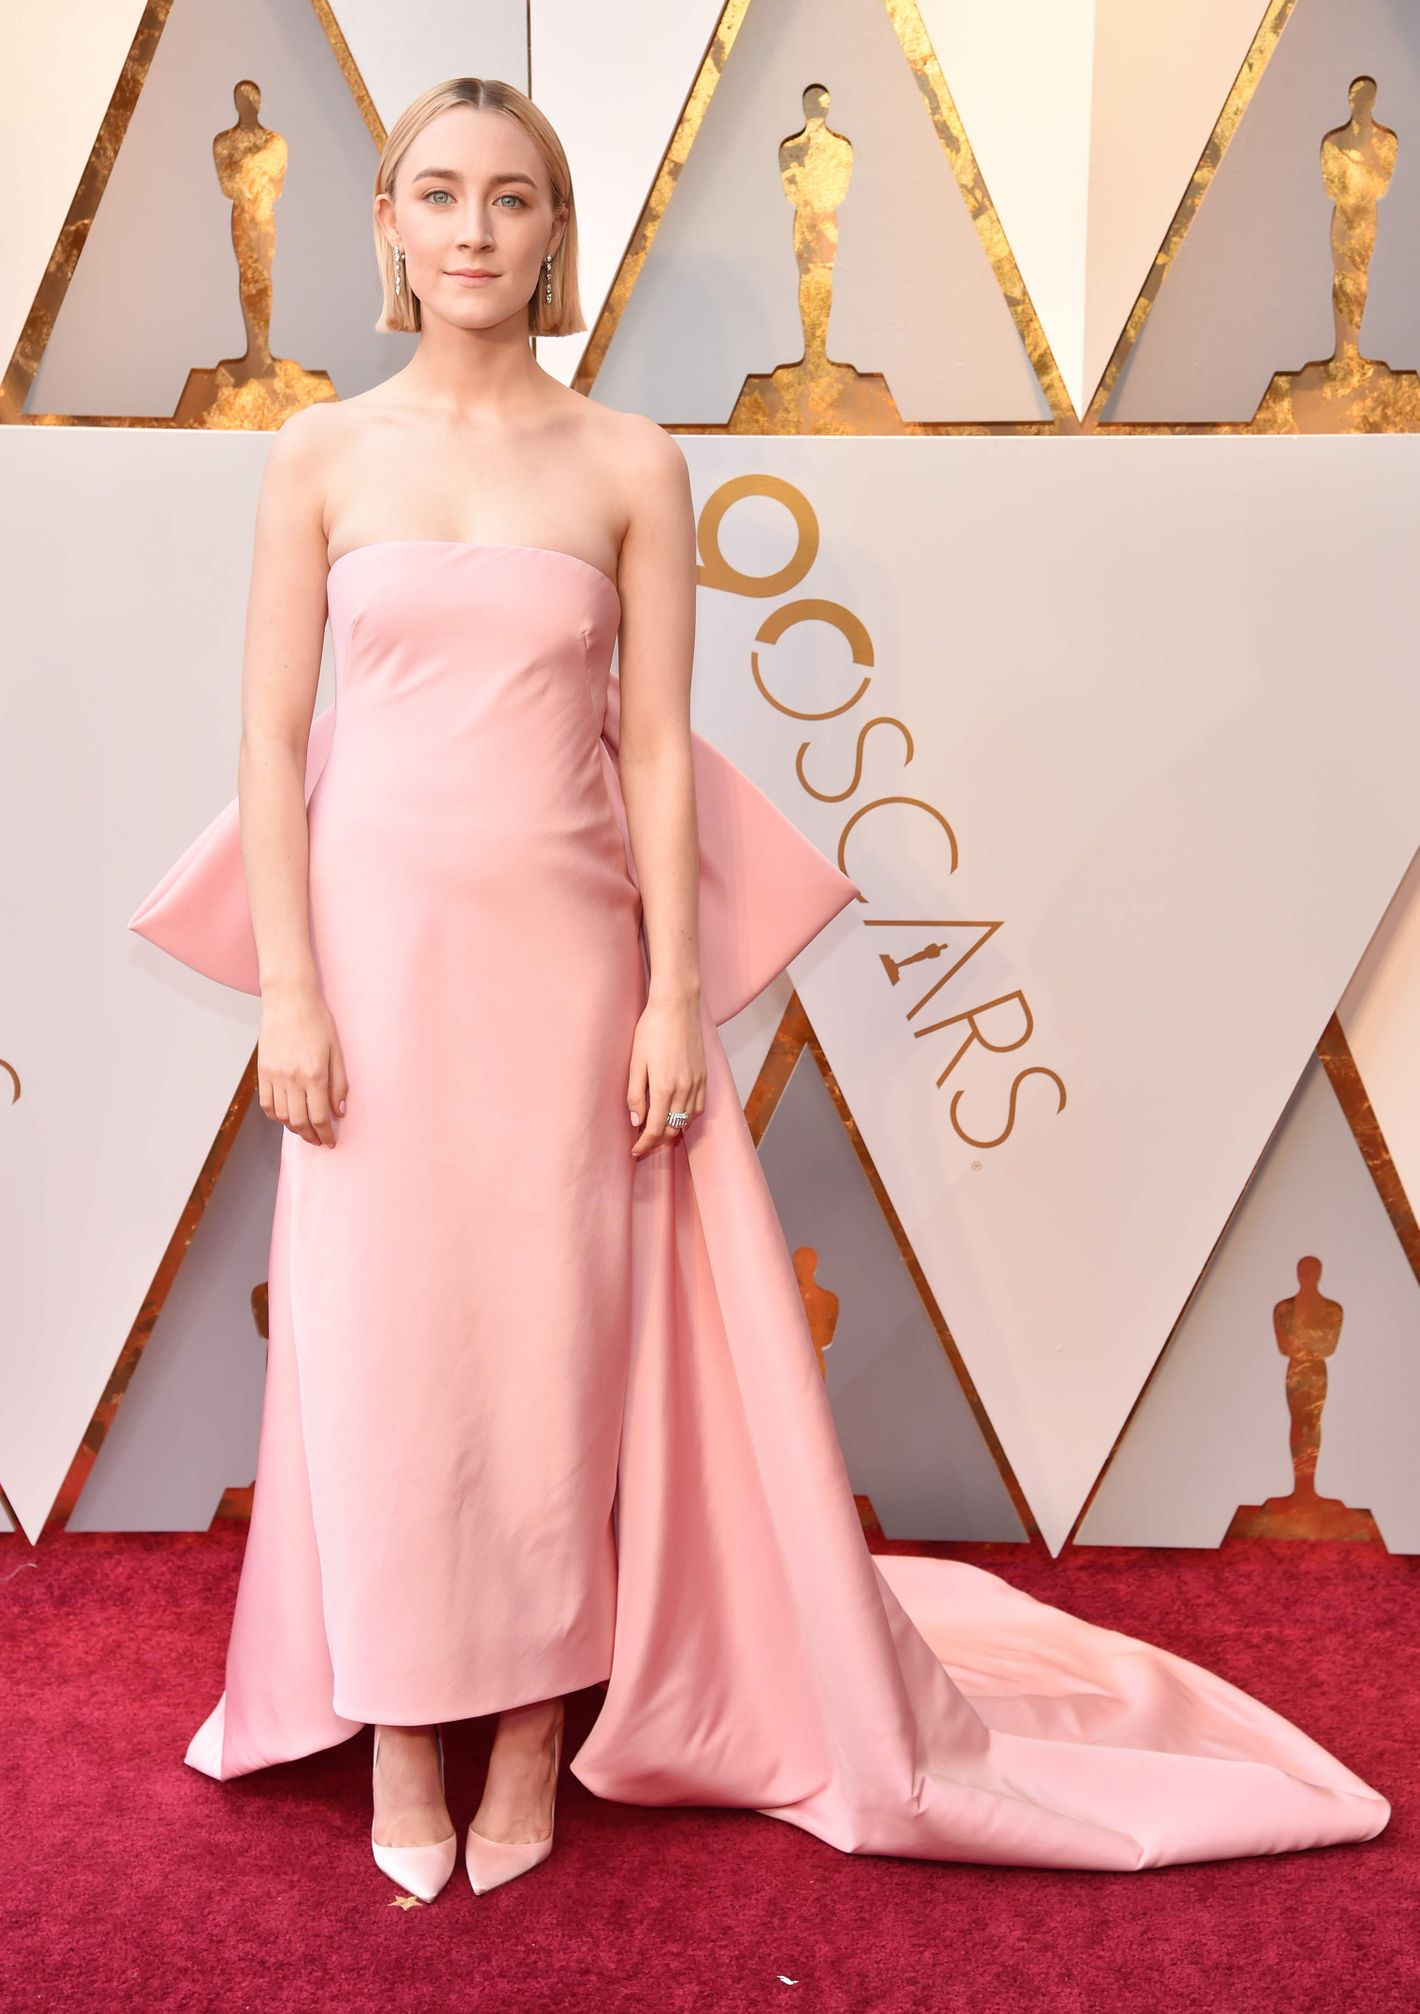 The 14 Best Red Carpet Dresses From the Oscars 2018